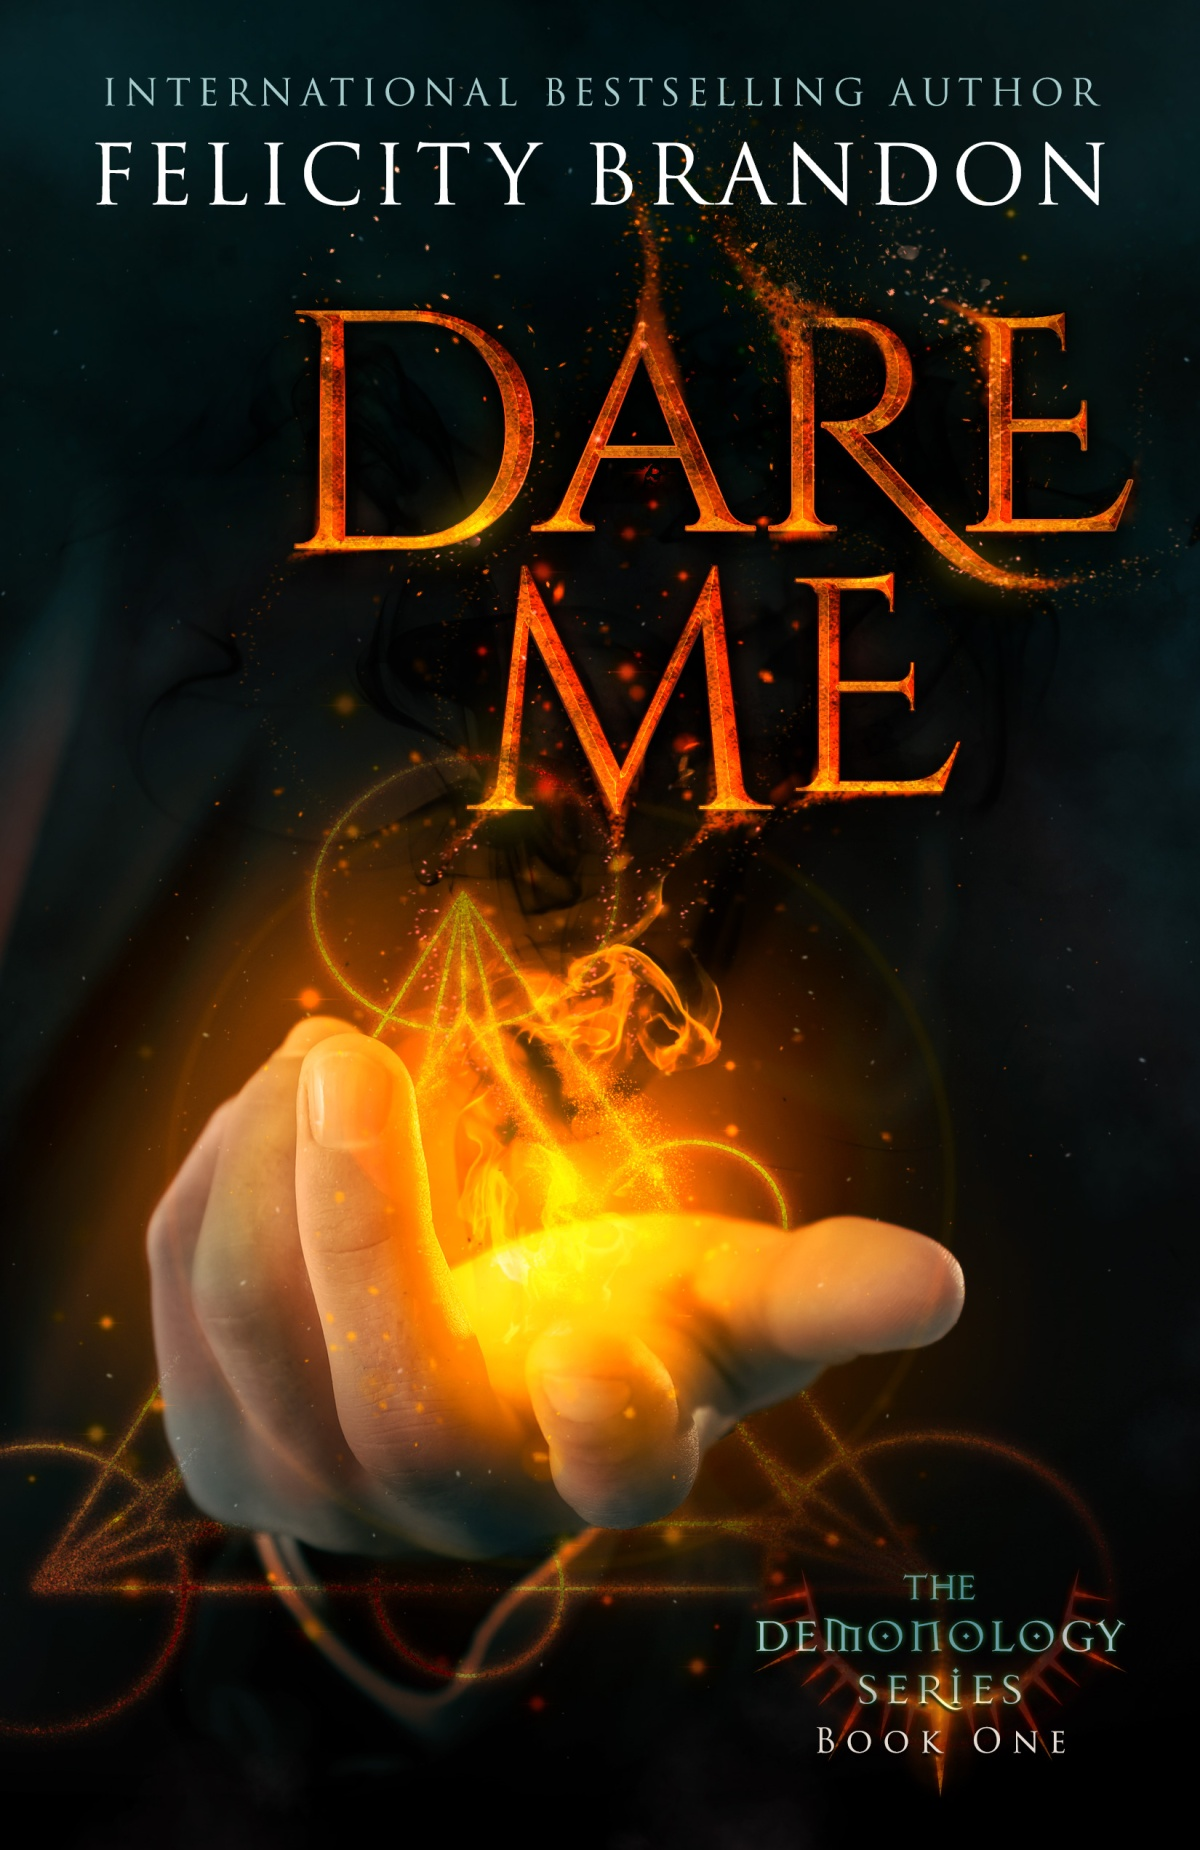 New release Dare Me by Felicity Brandon